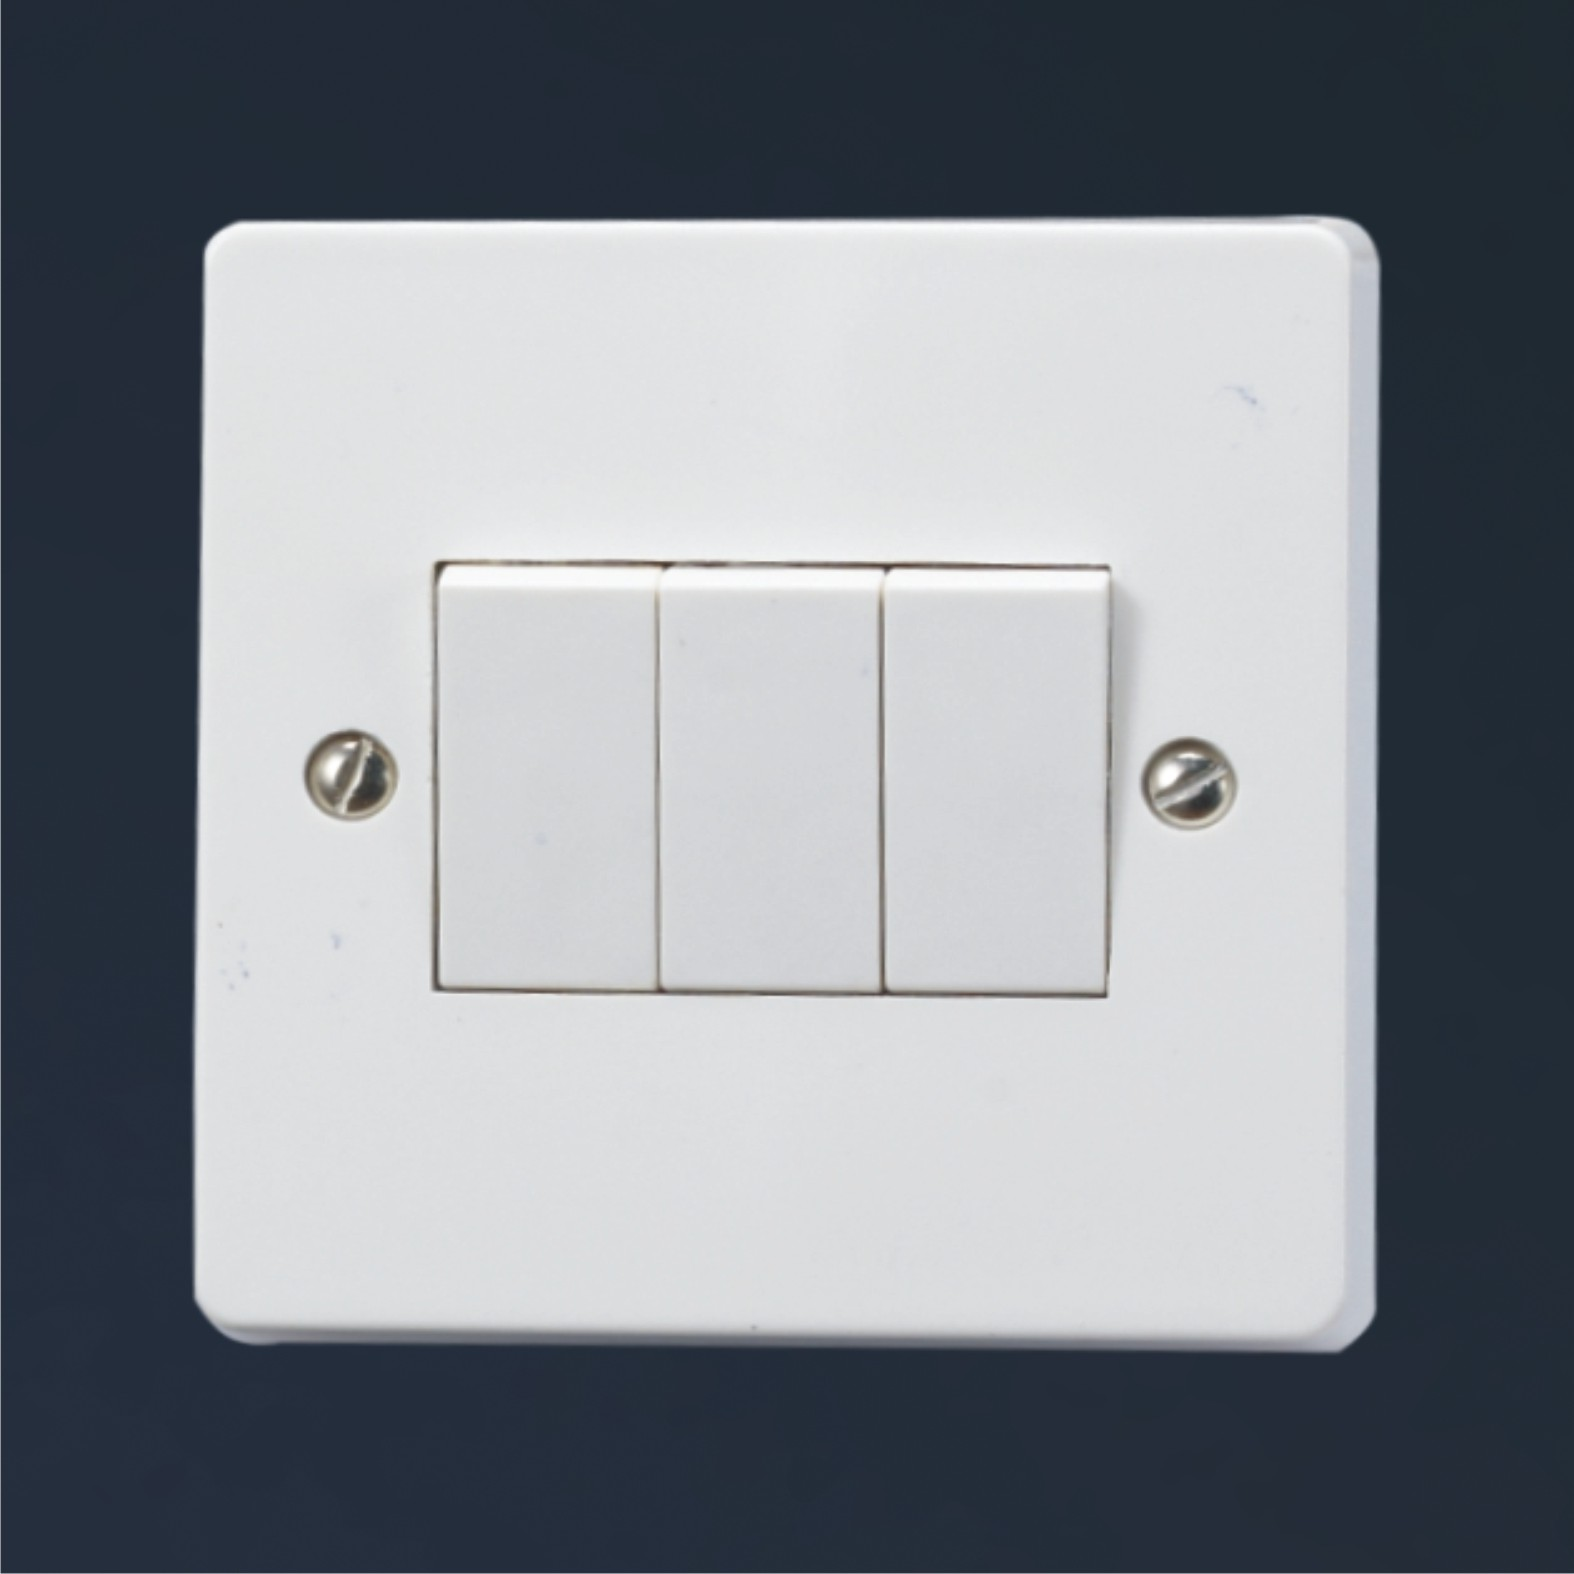 Top 10 wall light switches of 2018 warisan lighting wall light switches photo 1 aloadofball Choice Image